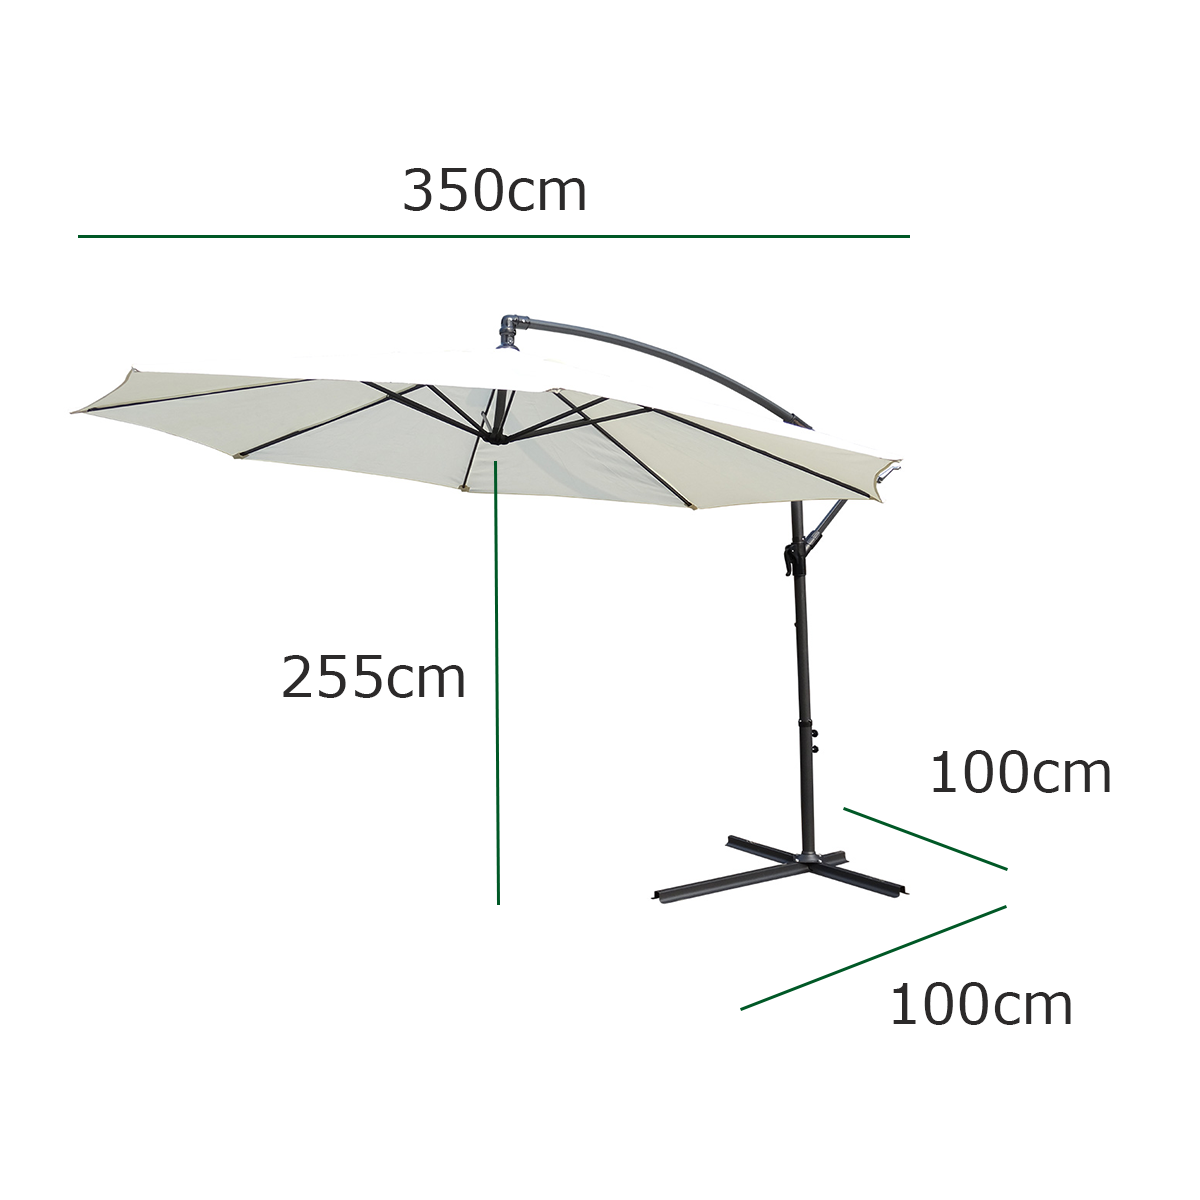 Kct Large Cream 3 5m Cantilever Garden Patio Parasol